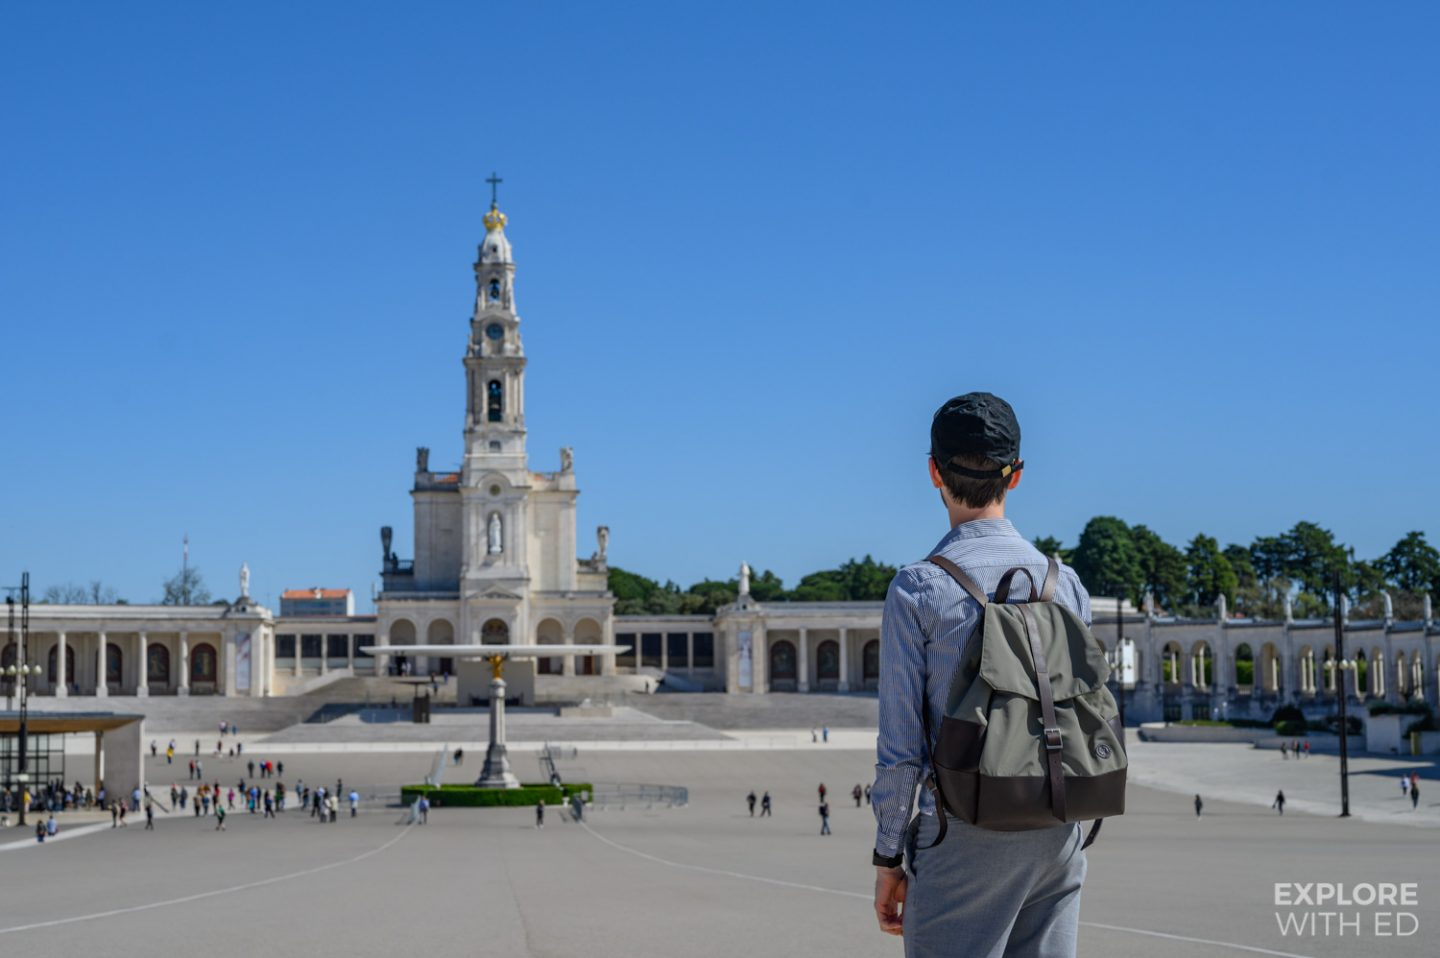 Standing in square of Fatima overlooking the sacred heart of Jesus statue and Basilica